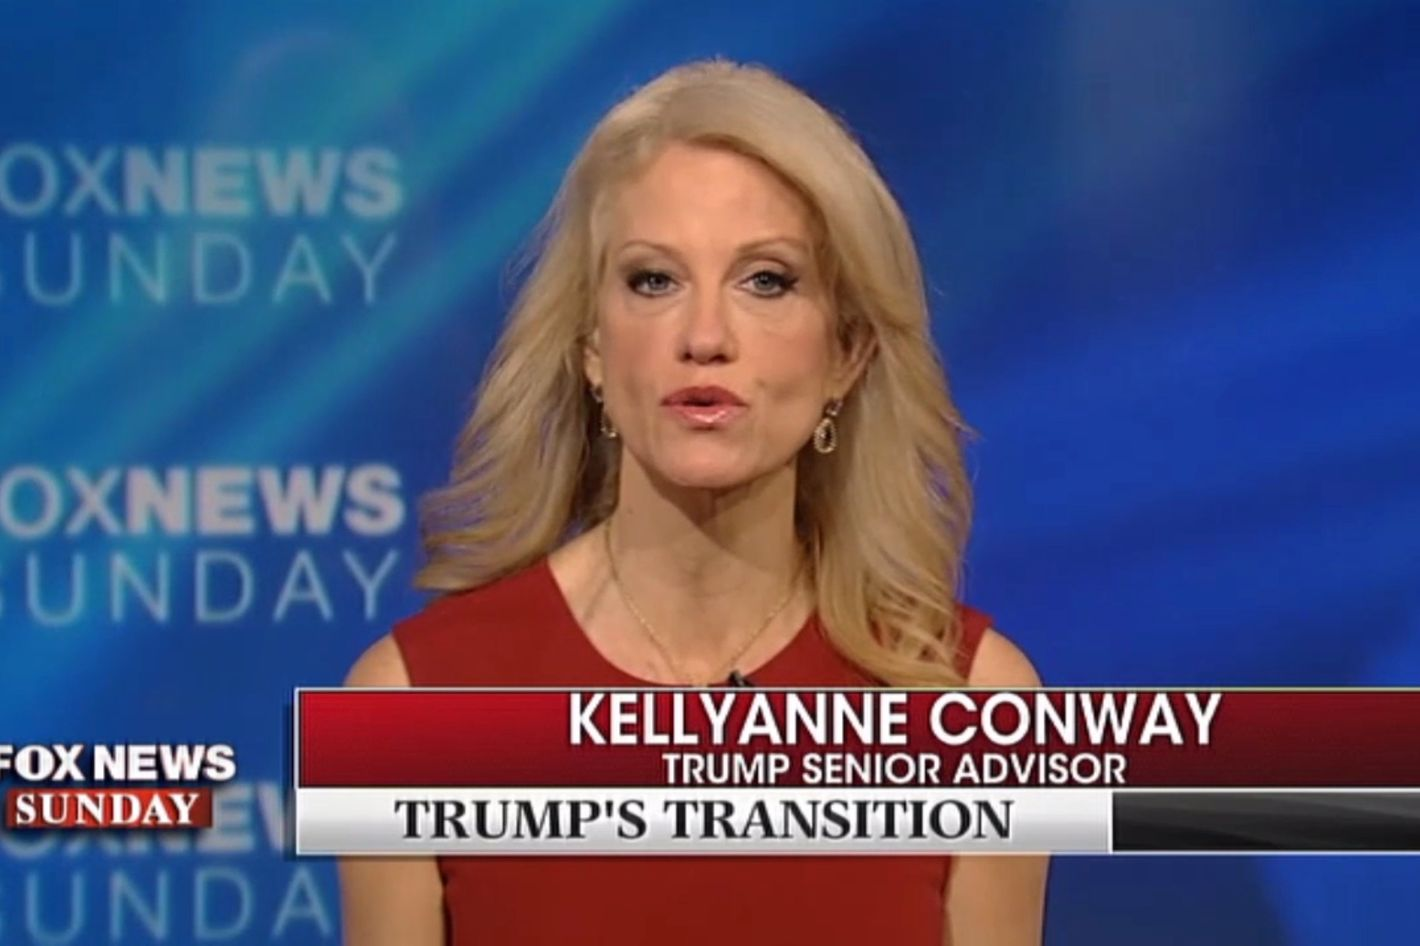 conway says reid should be very careful criticizing trump